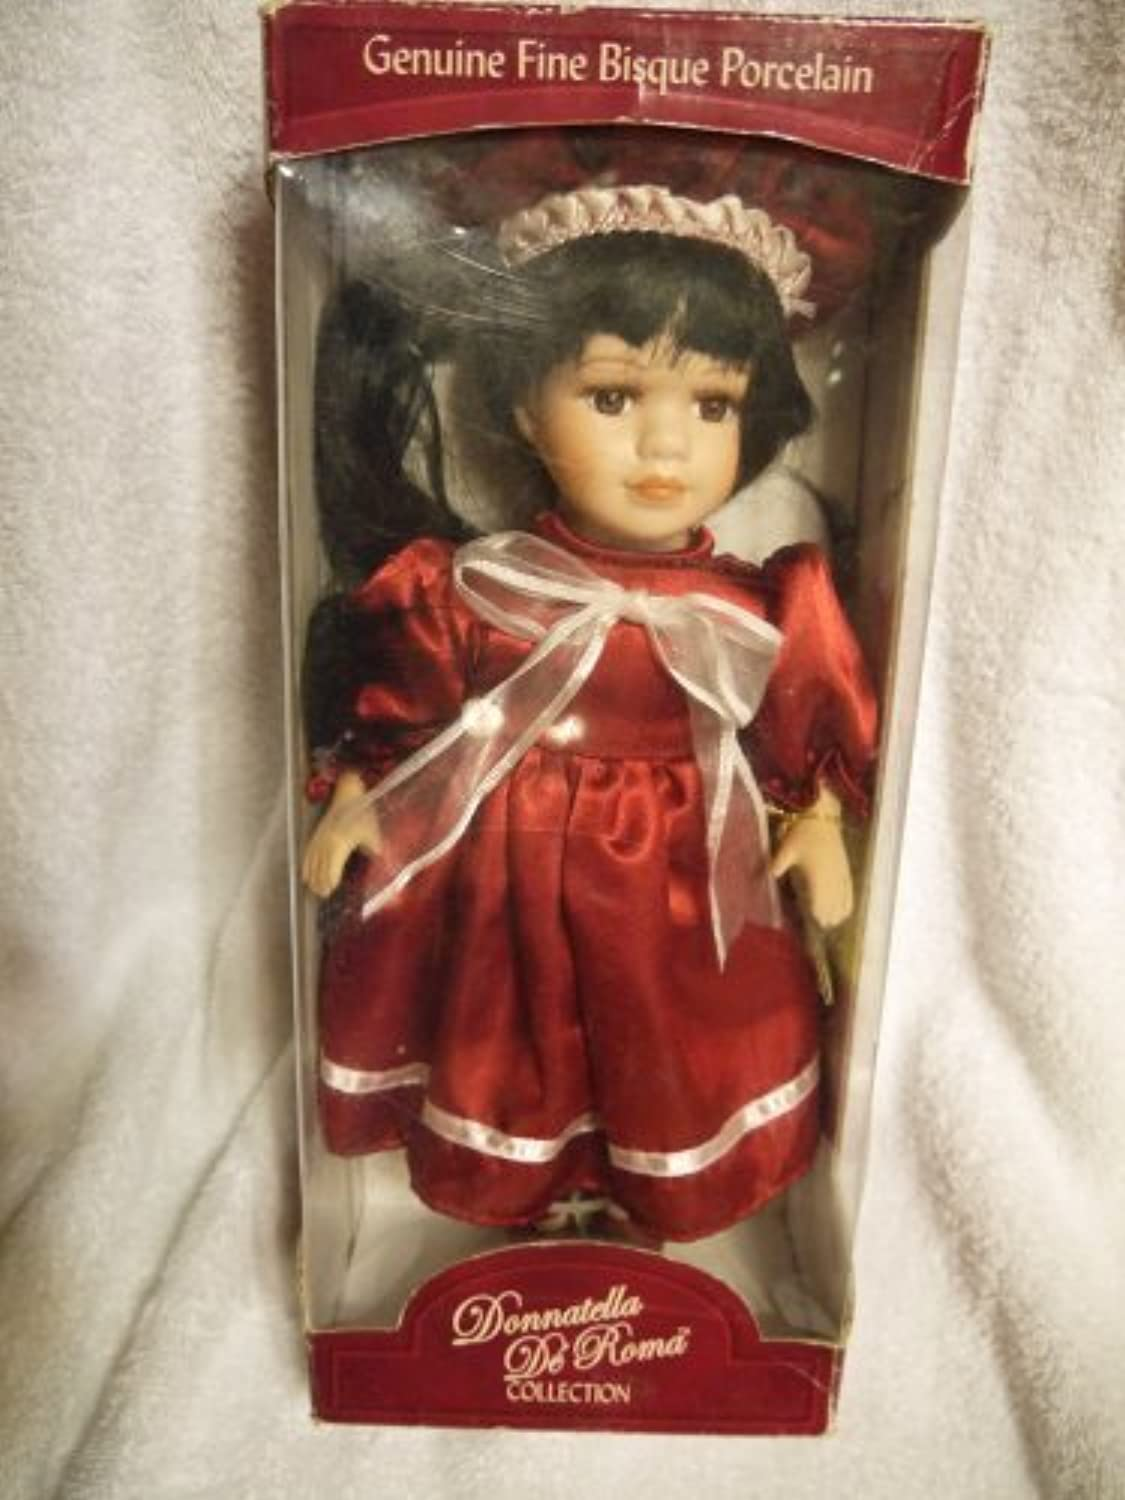 COLLECTOR'S CHOICE - Limited Edition Doll by damentella De Roma by DanDee International